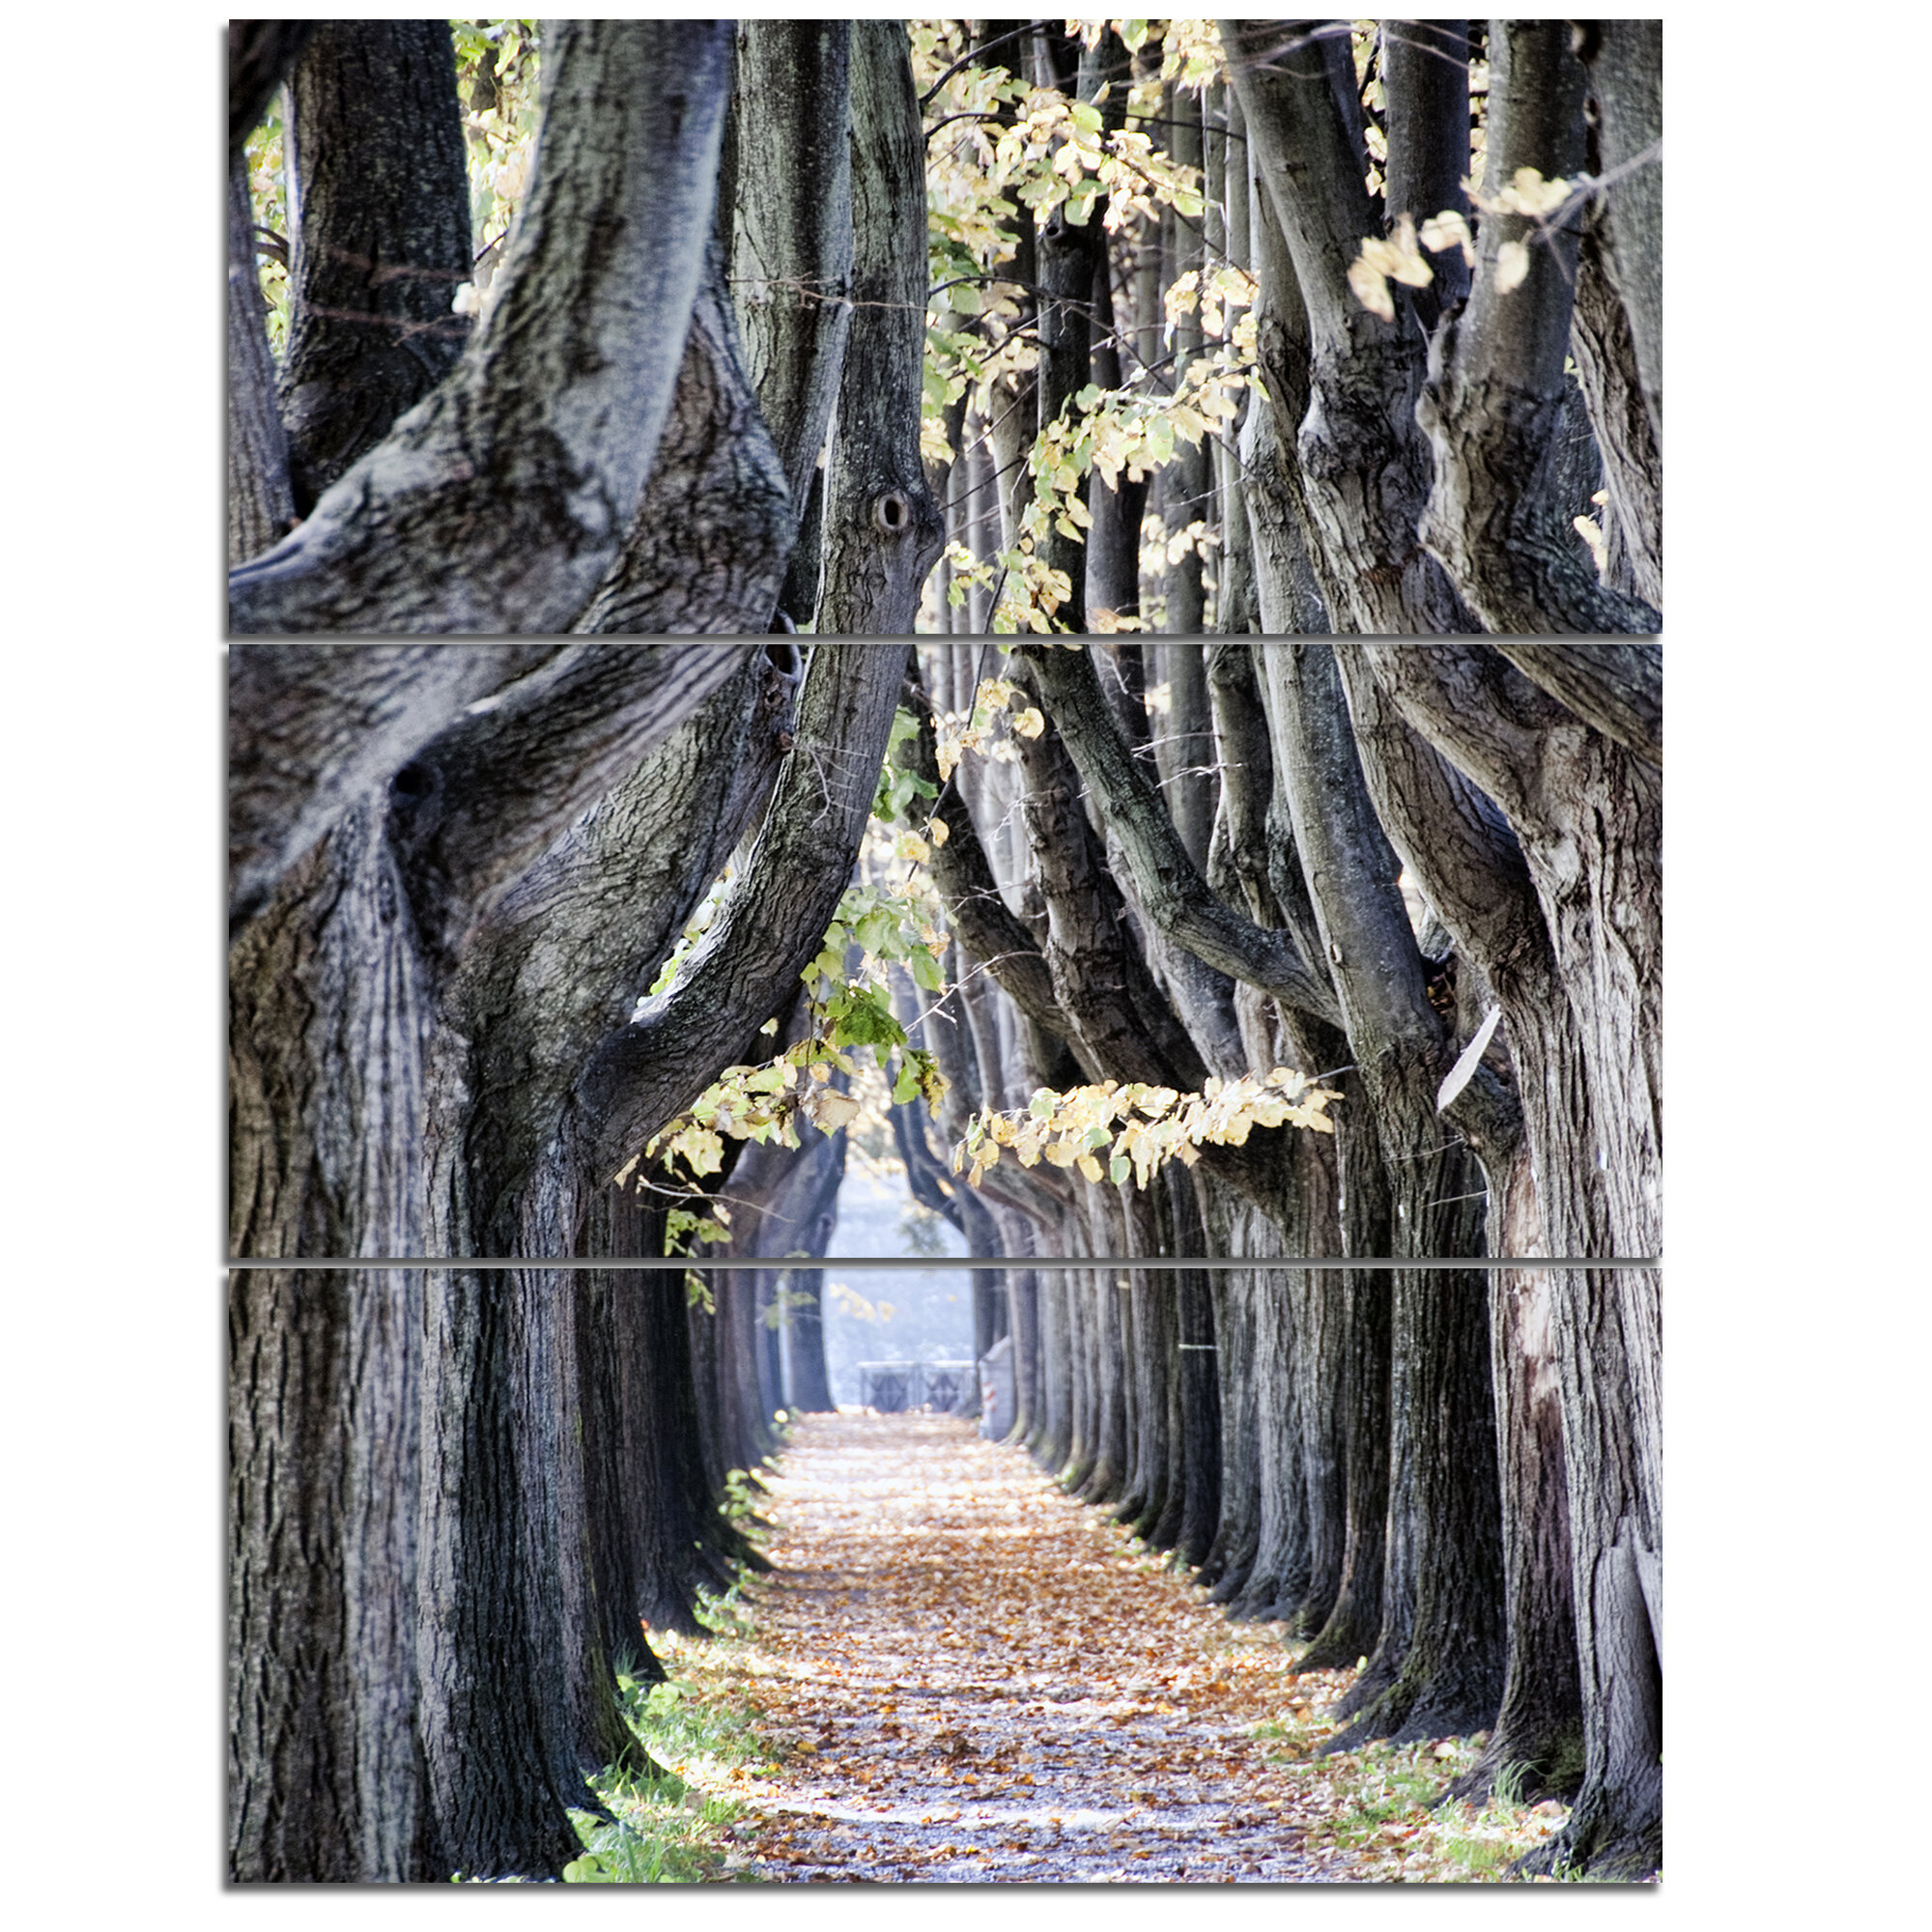 Designart Tree Outside Lucca Italy 3 Piece Wall Art On Wrapped Canvas Set Wayfair